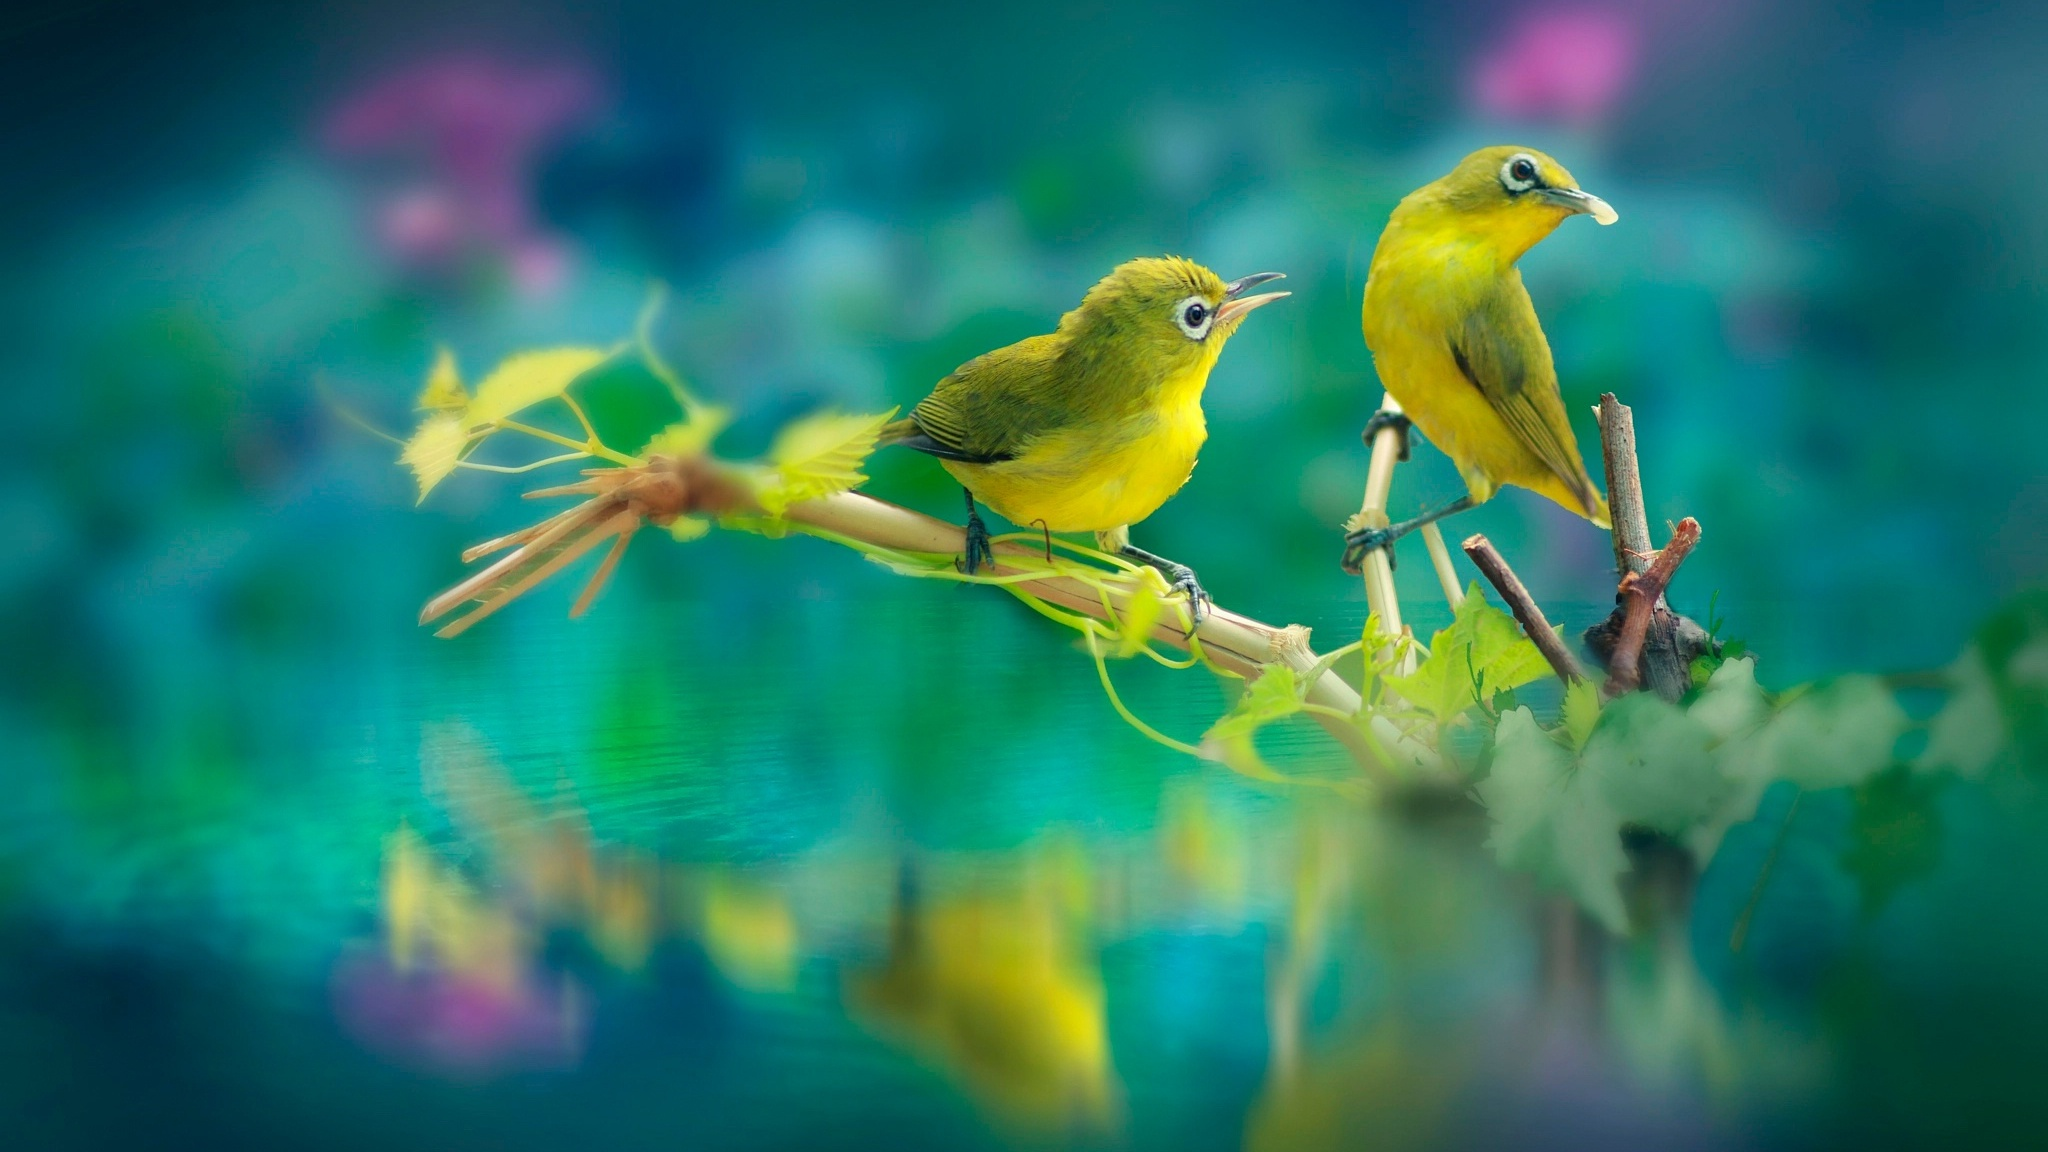 2048x1152 Beautiful Birds 2048x1152 Resolution Hd 4k Wallpapers Images Backgrounds Photos And Pictures